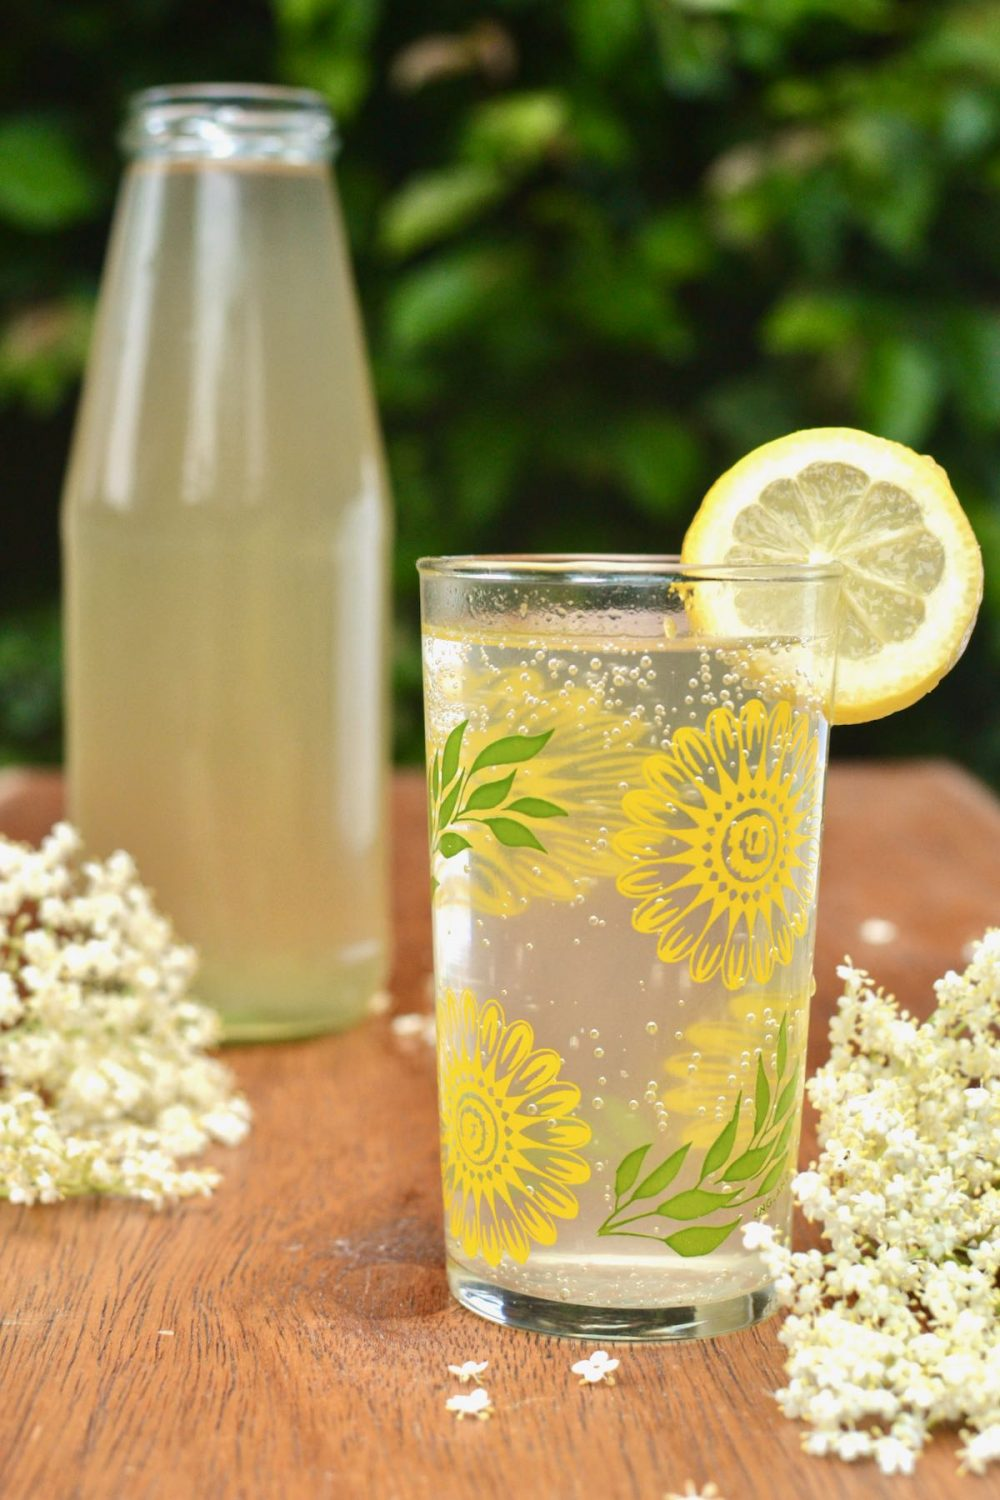 A glass of elderflower cordial mixed with water, and a bottle of homemade cordial behind